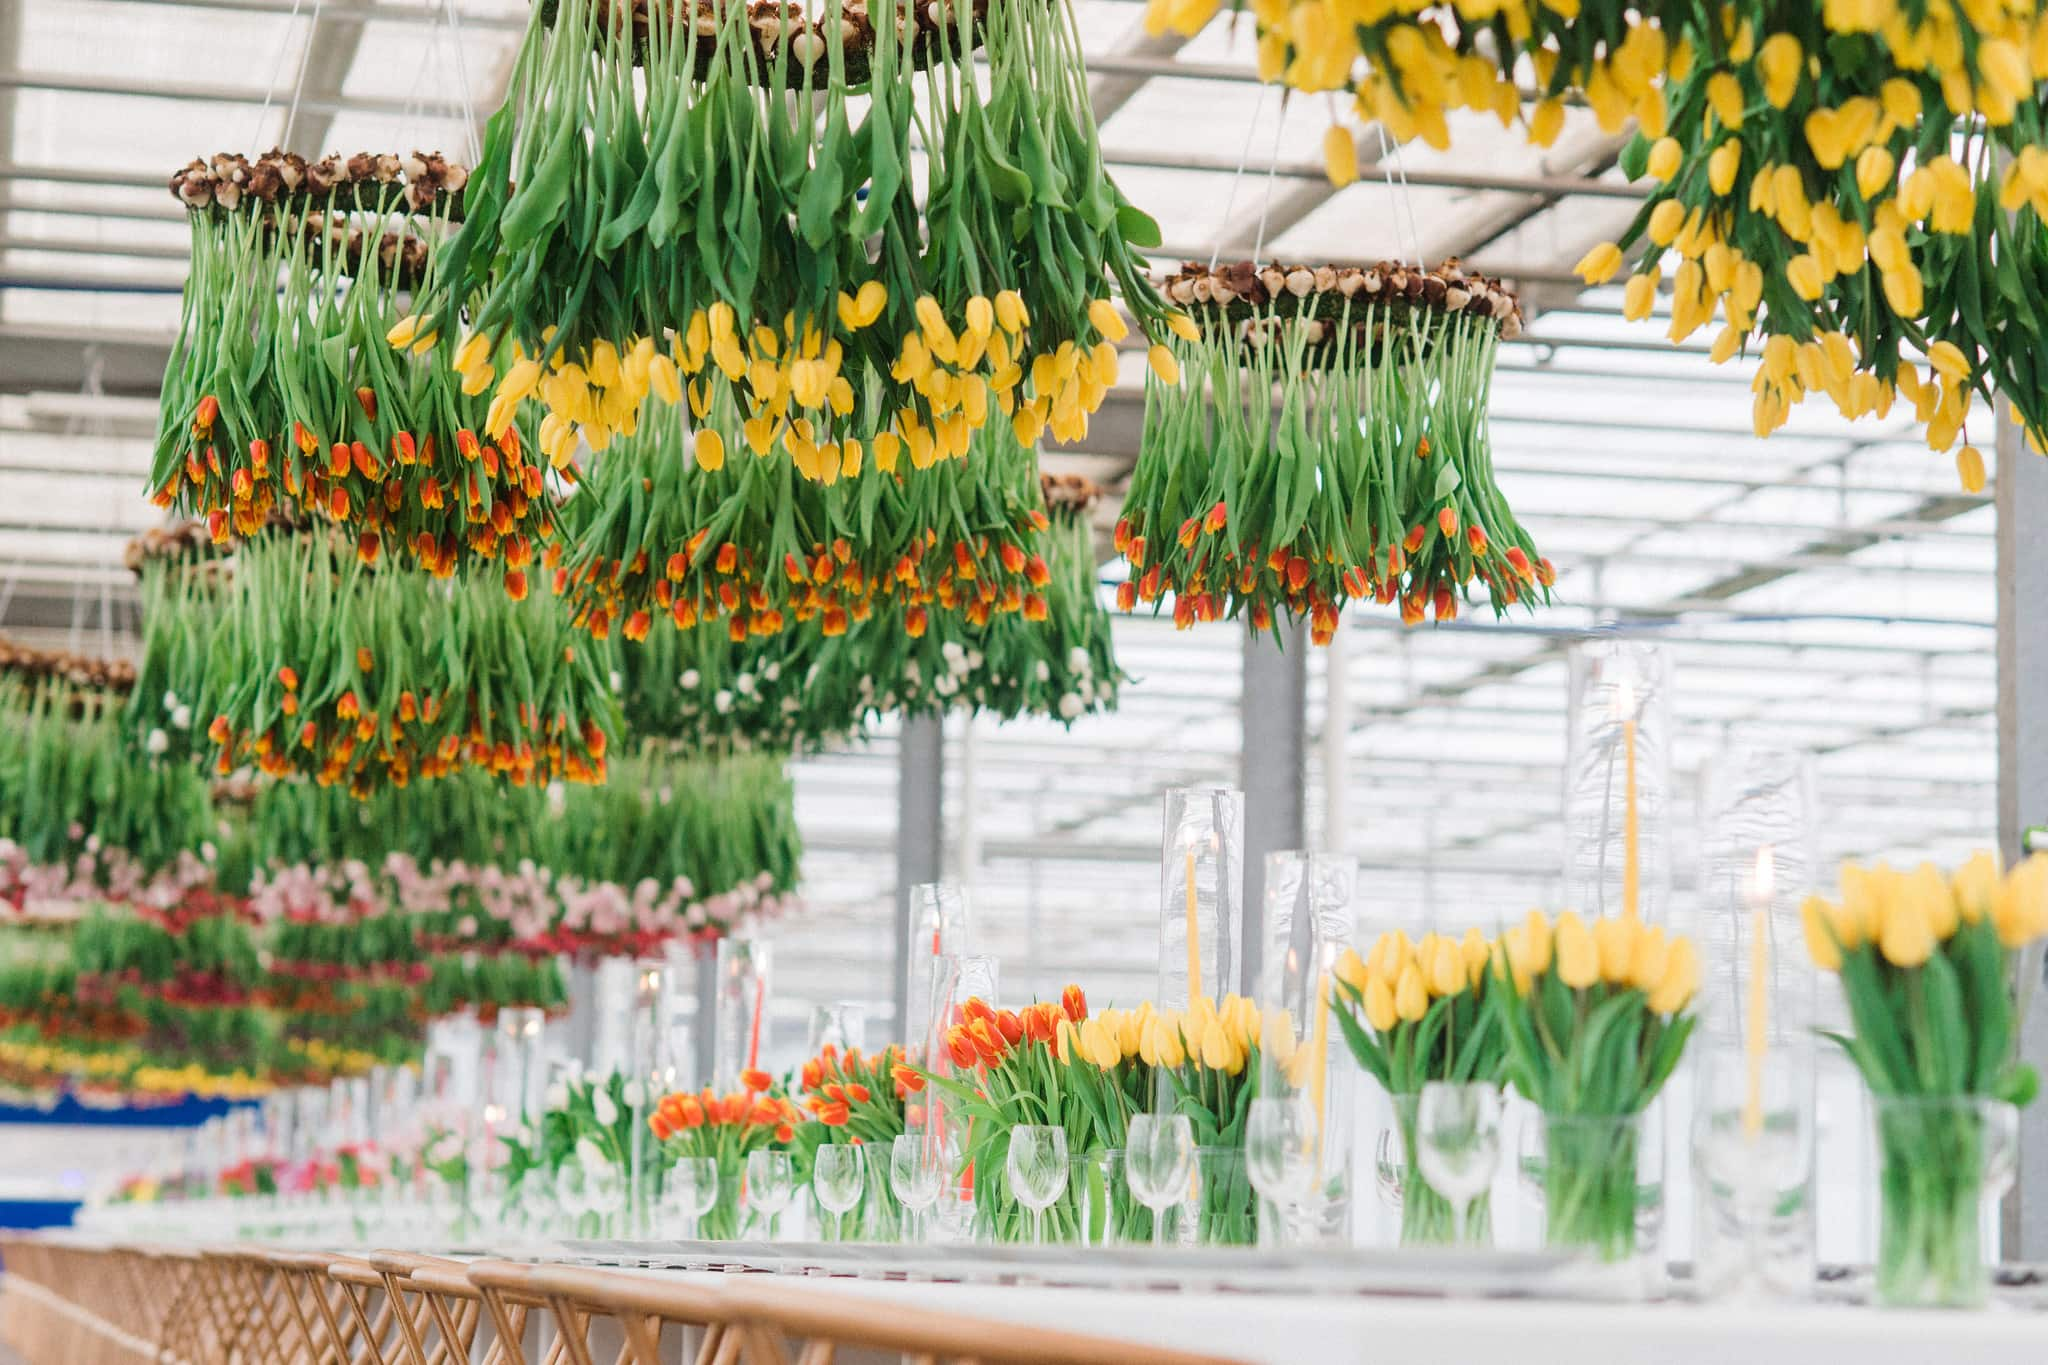 Dinner table in greenhouse with tulip chandeliers.